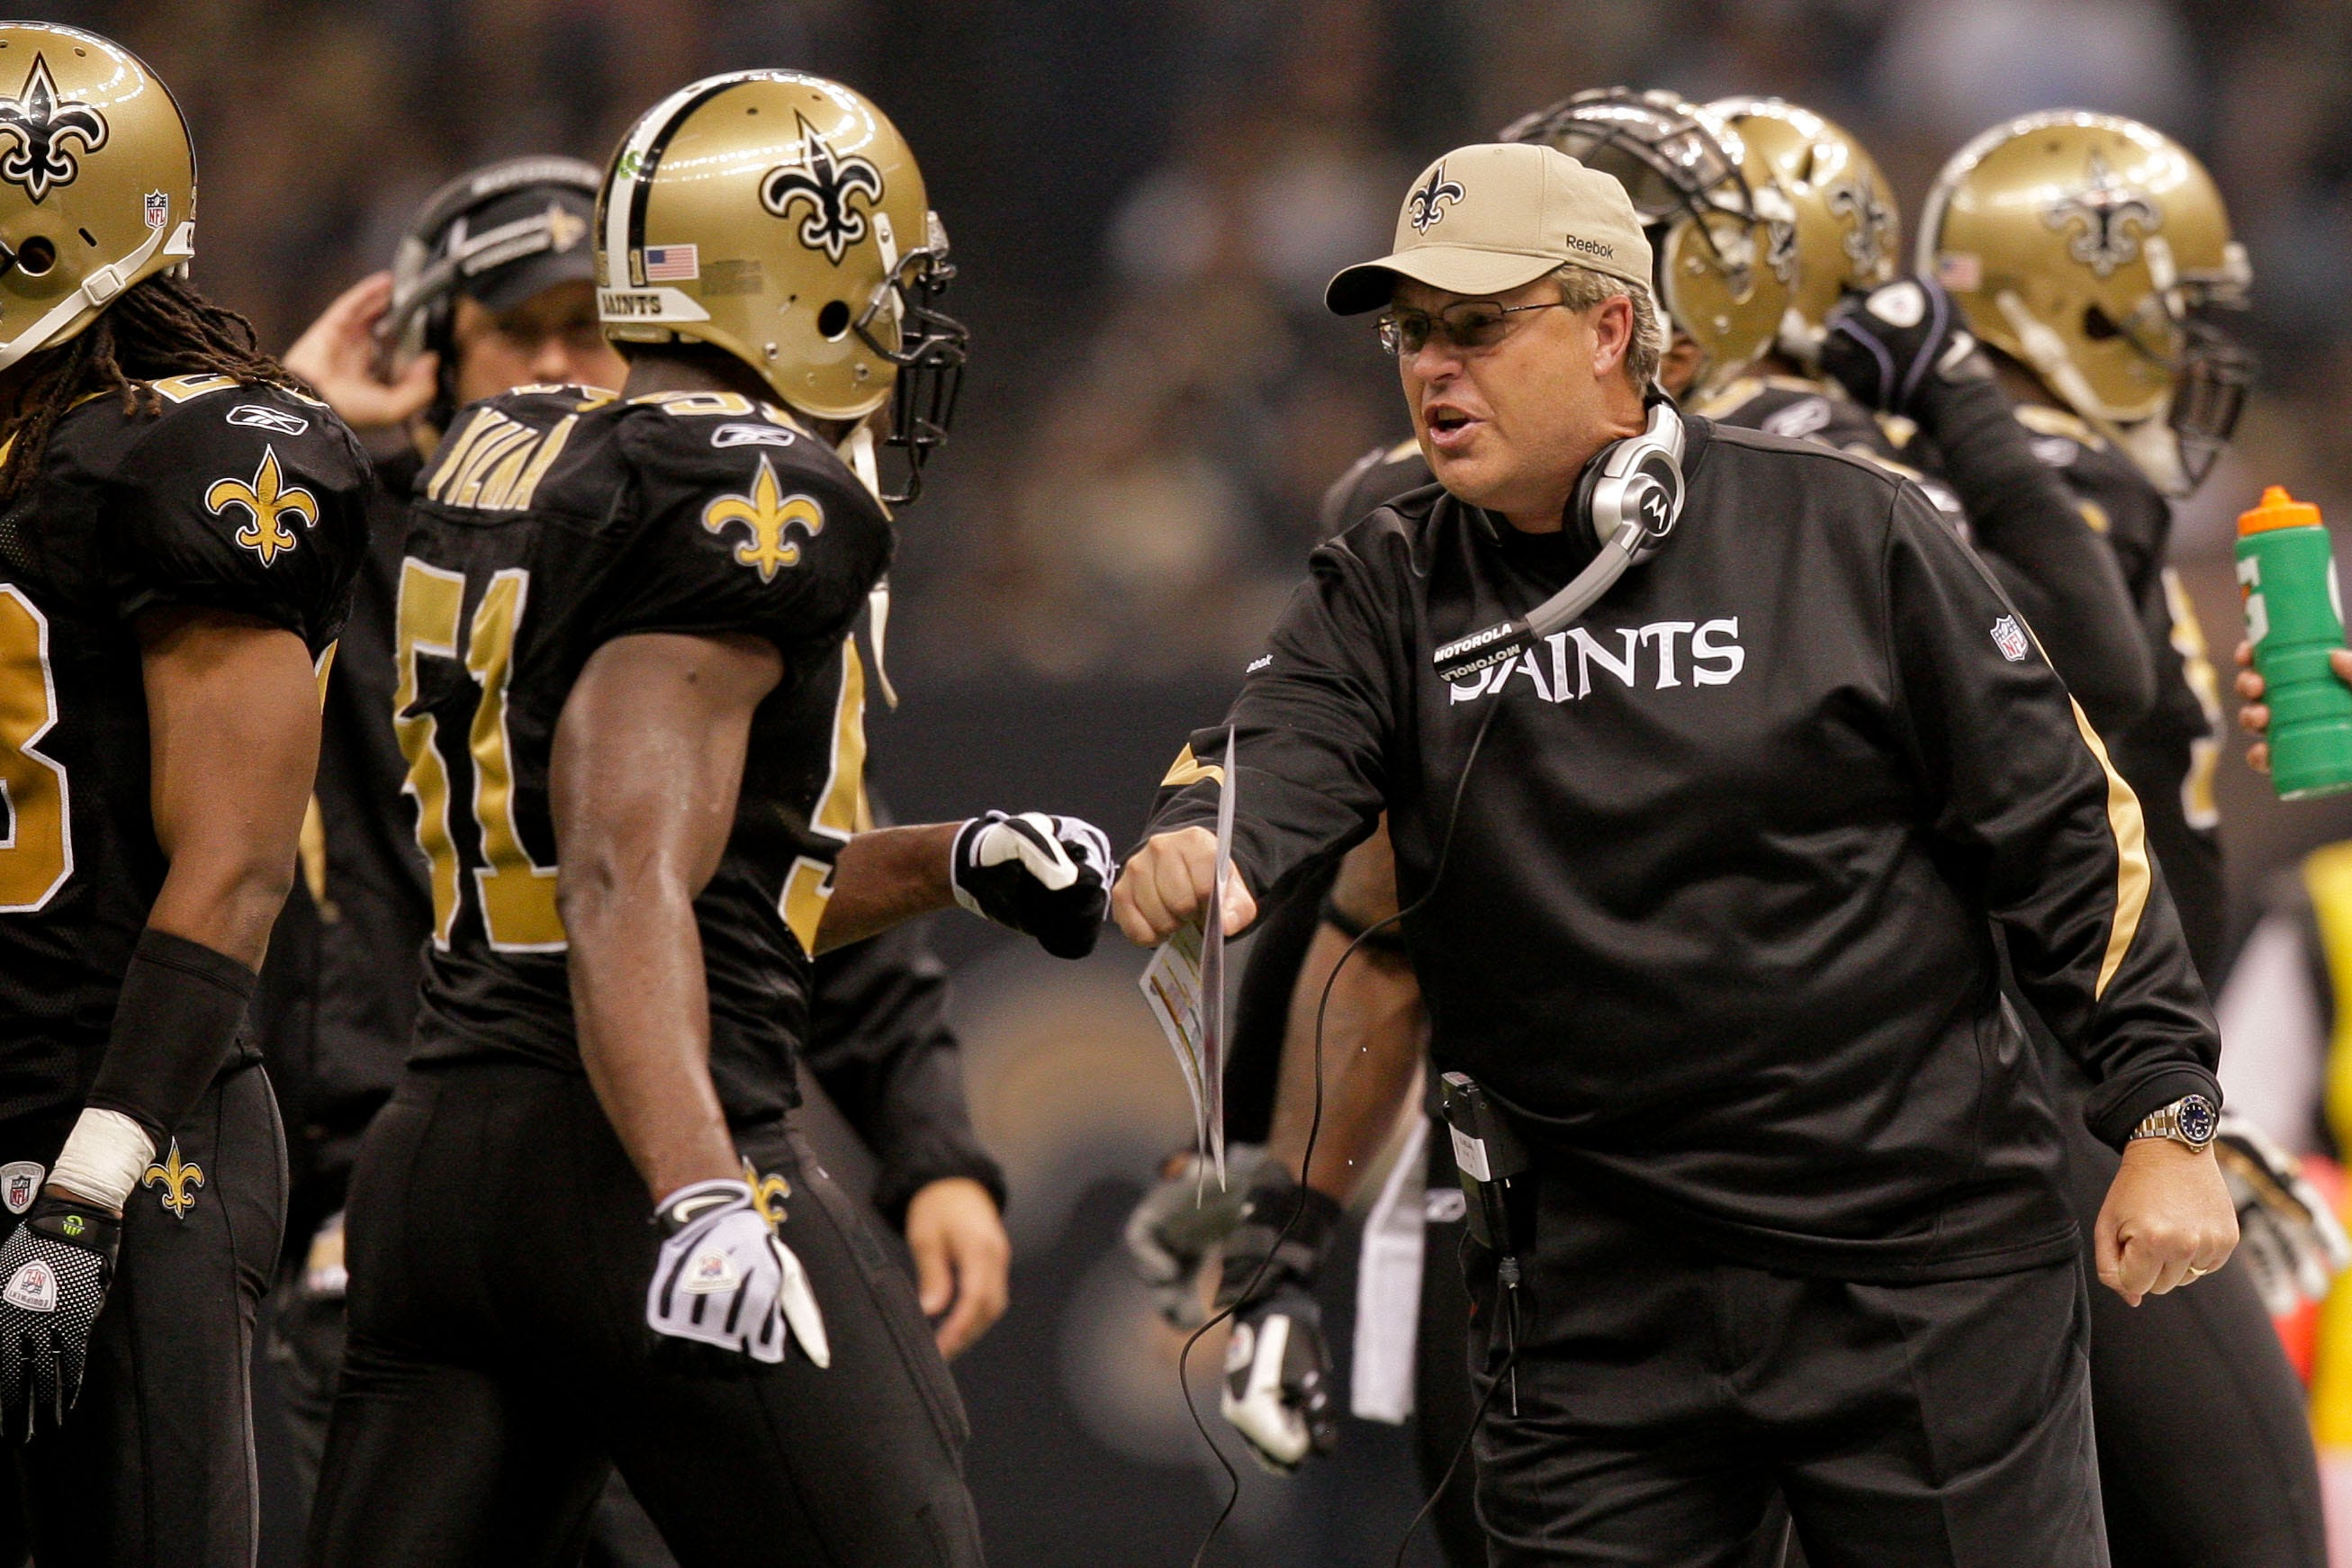 Jonathan Vilma defends New York Jets DC Gregg Williams in wake of Odell Beckham Jr.'s comments